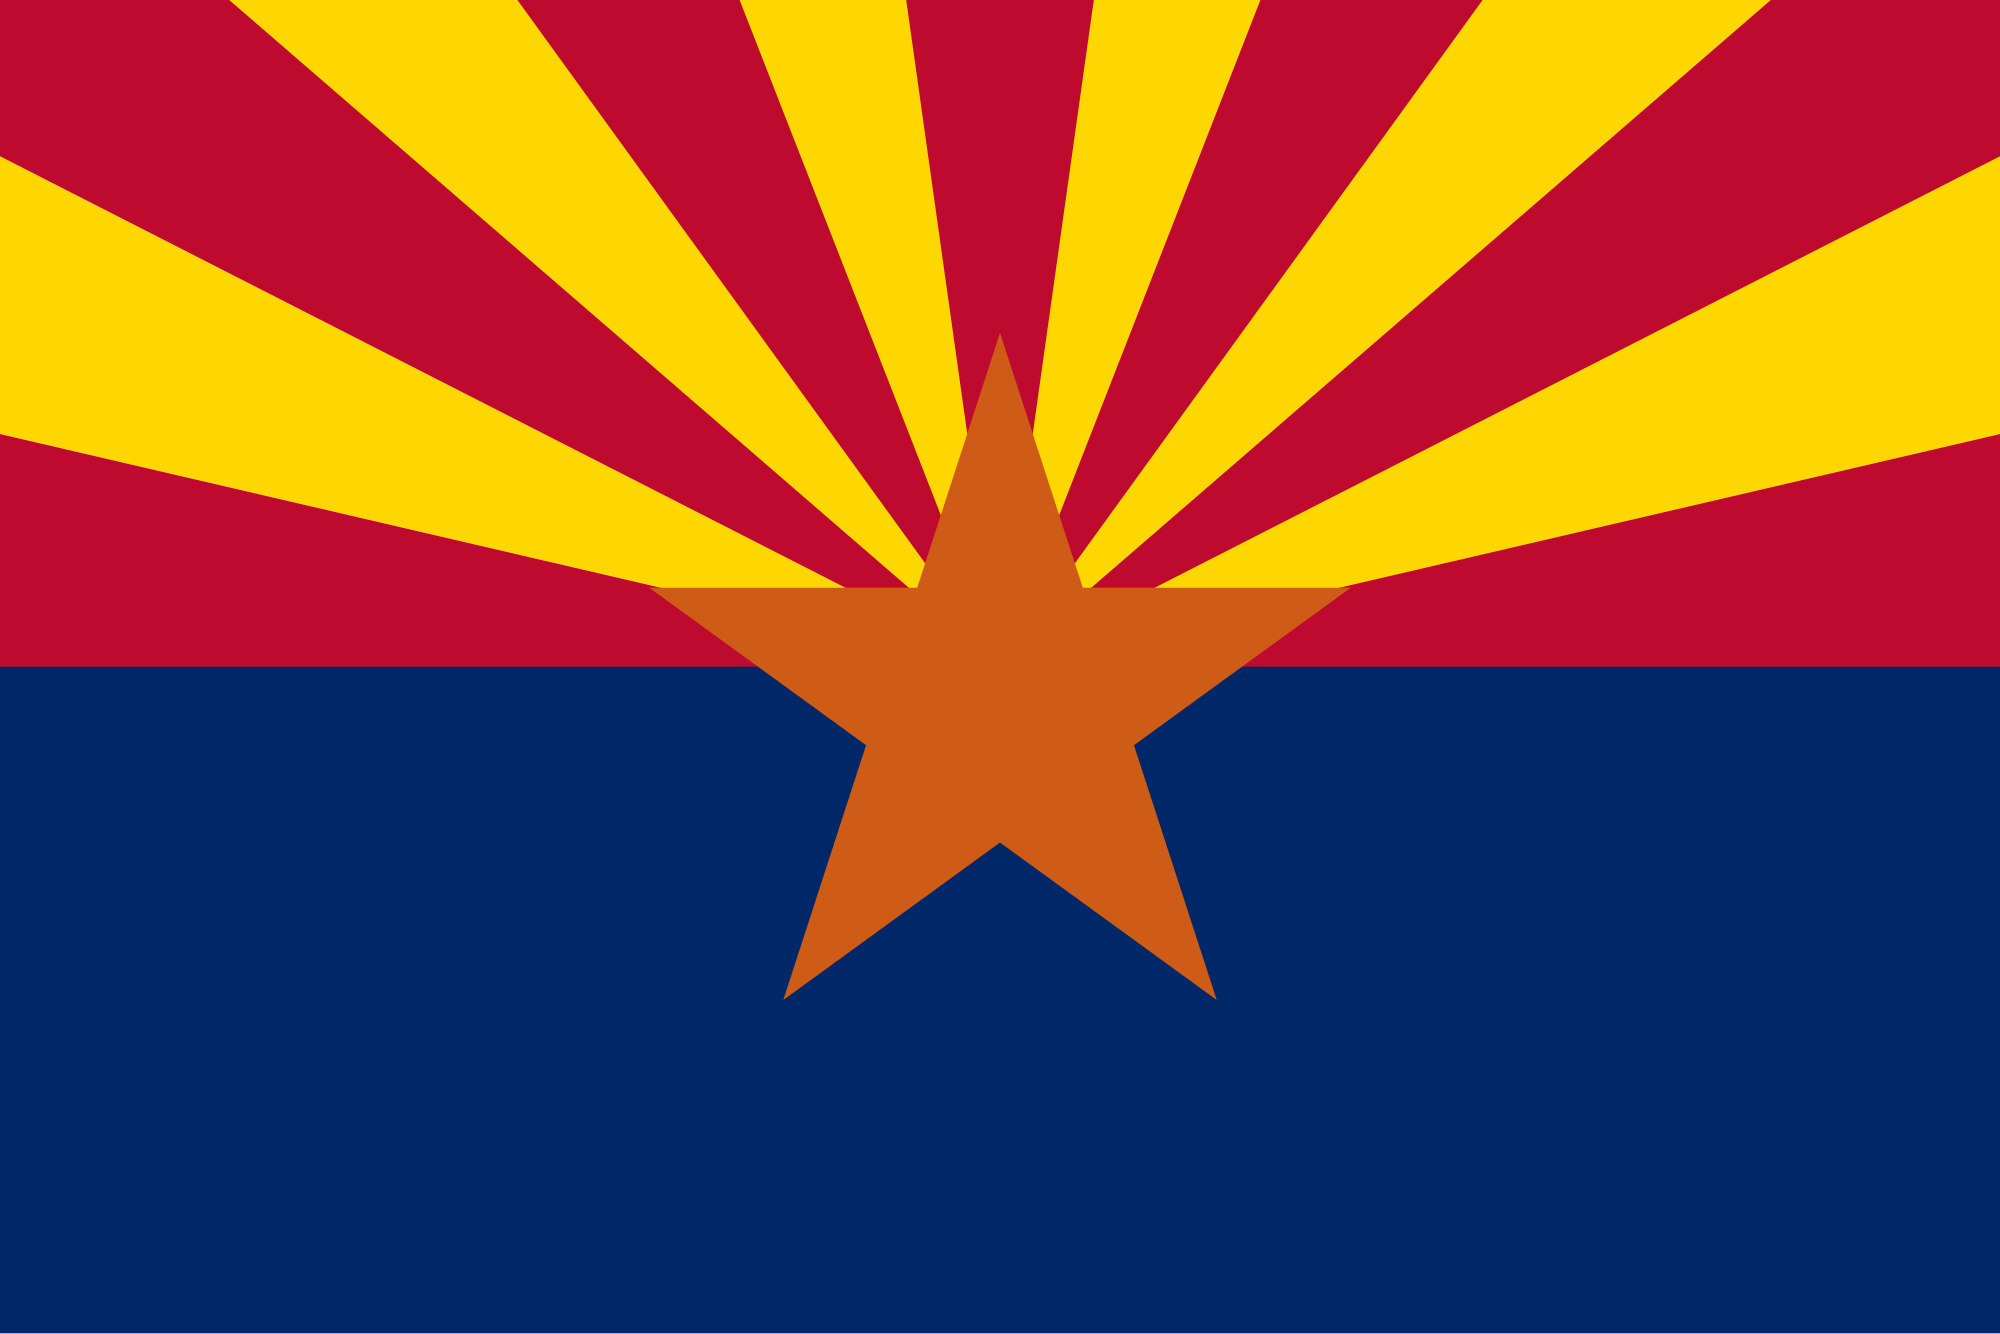 - ARIZONA DRONE REGISTRATION